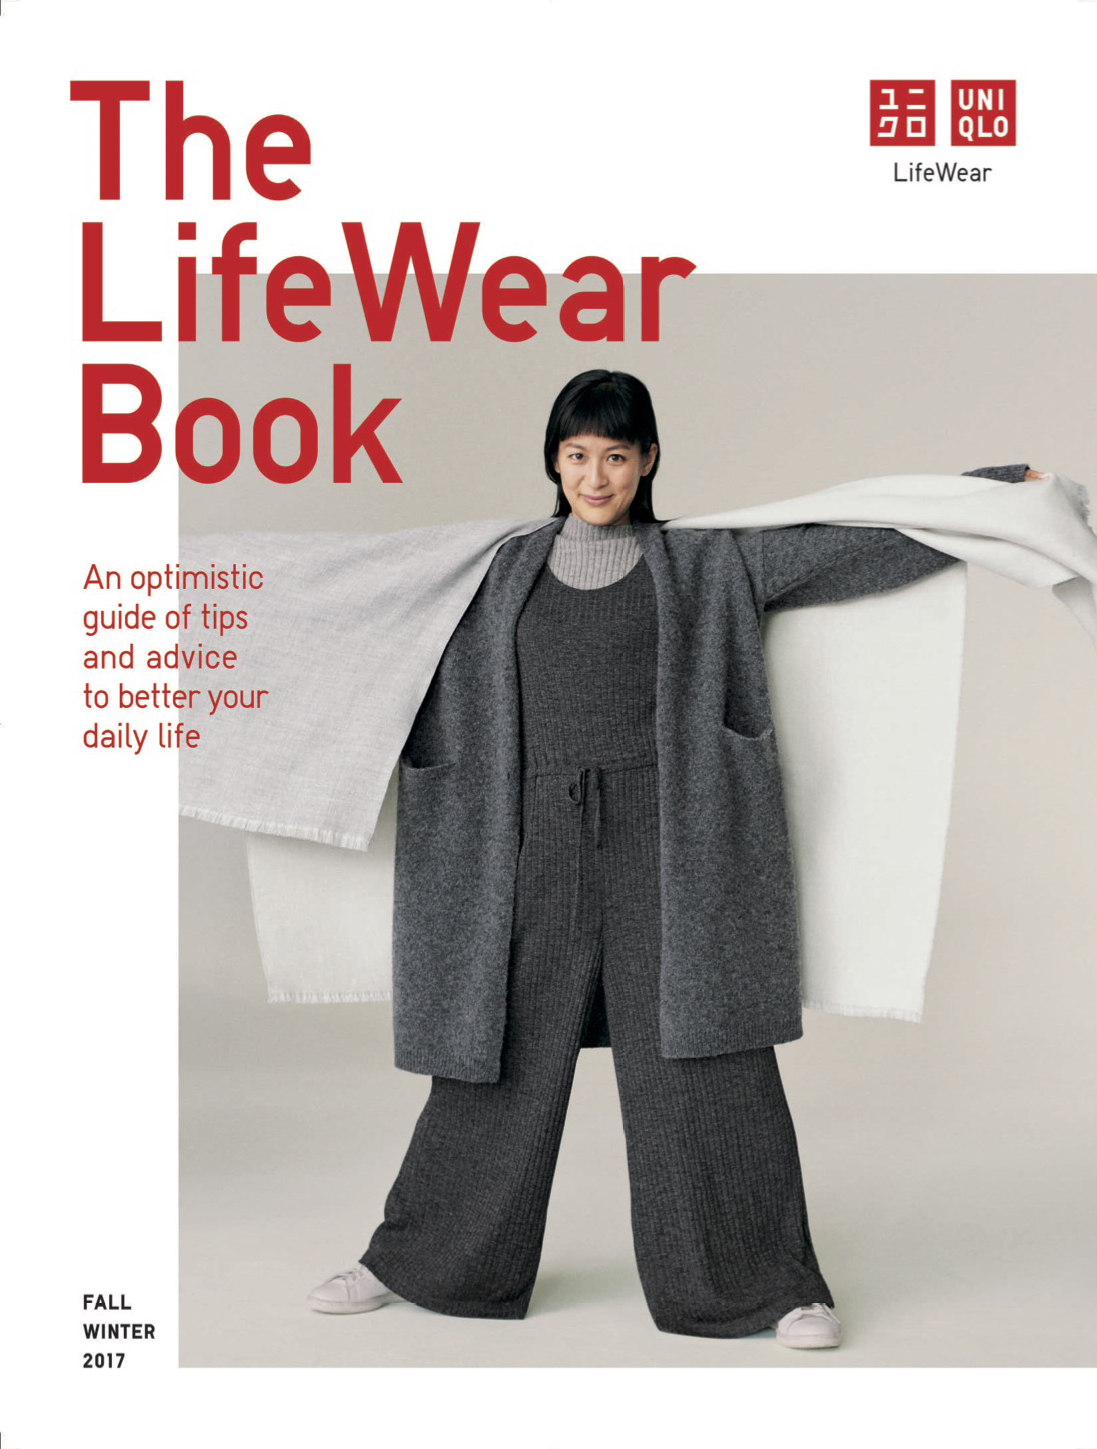 ÅyPDF(Final)-Cover BÅz17FW LifeWearBook.jpg